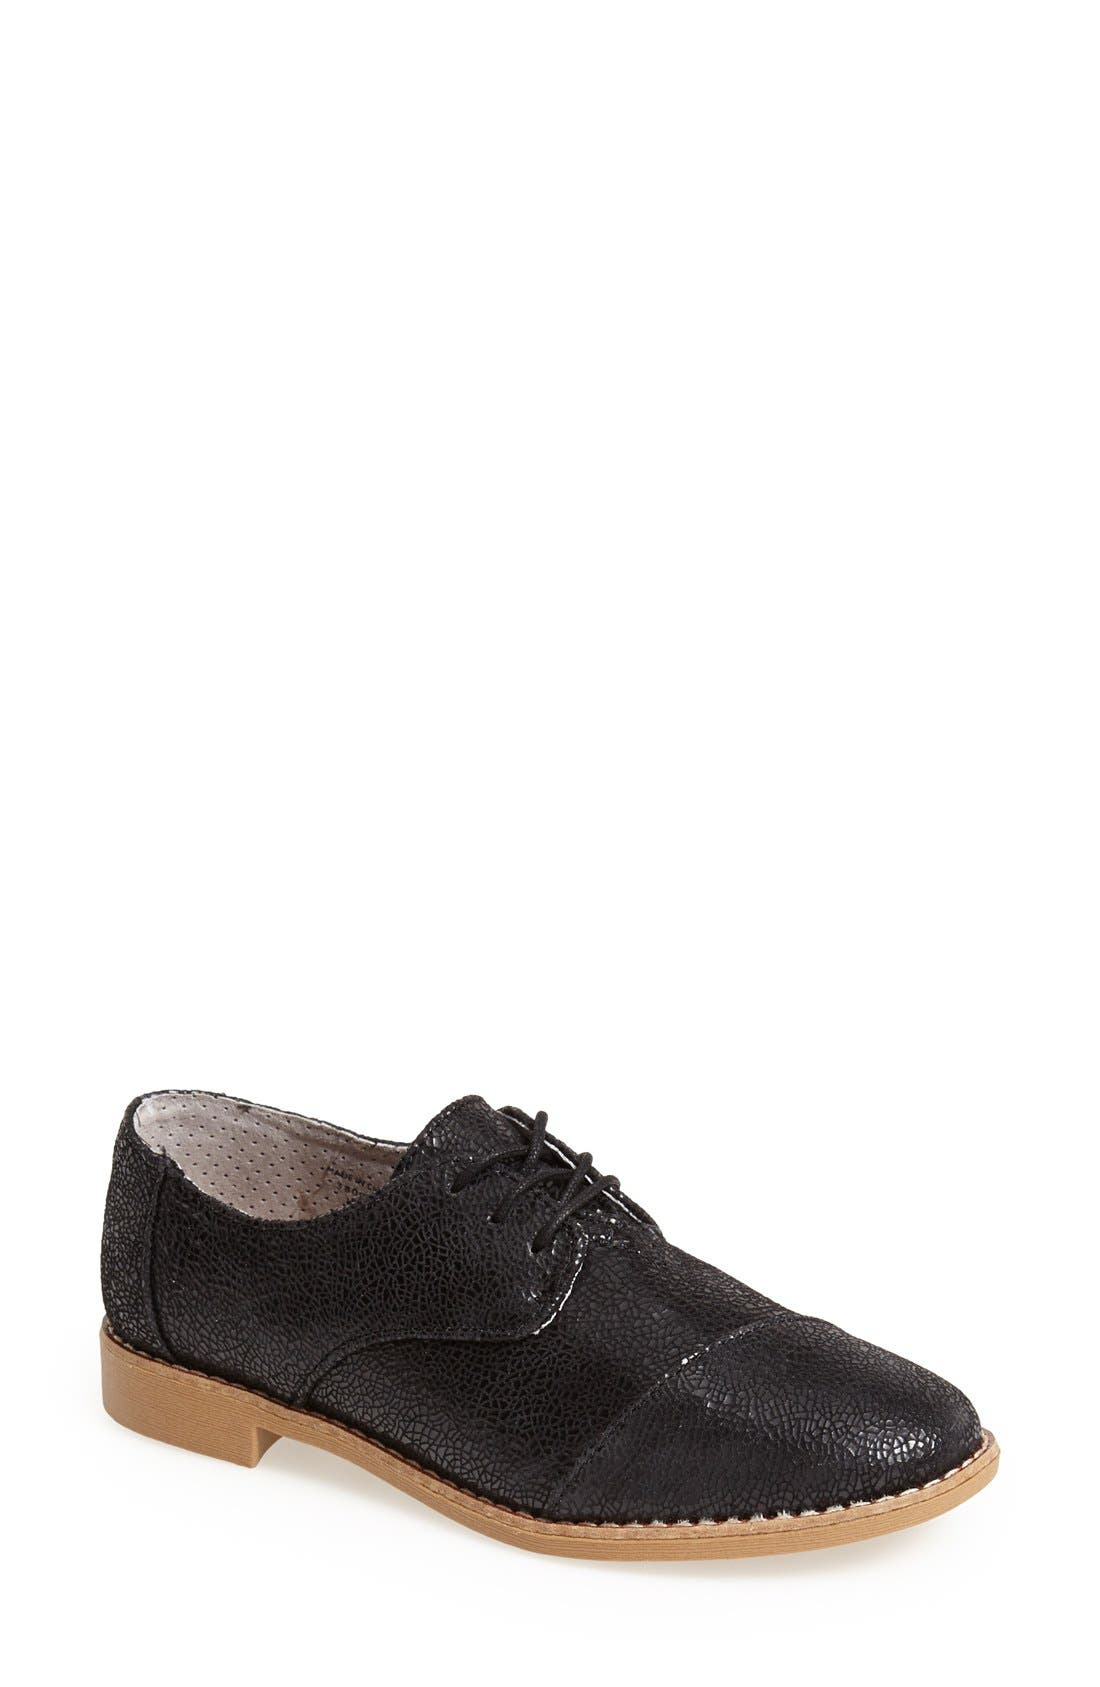 Alternate Image 1 Selected - TOMS Leather Brogue Oxford (Women)